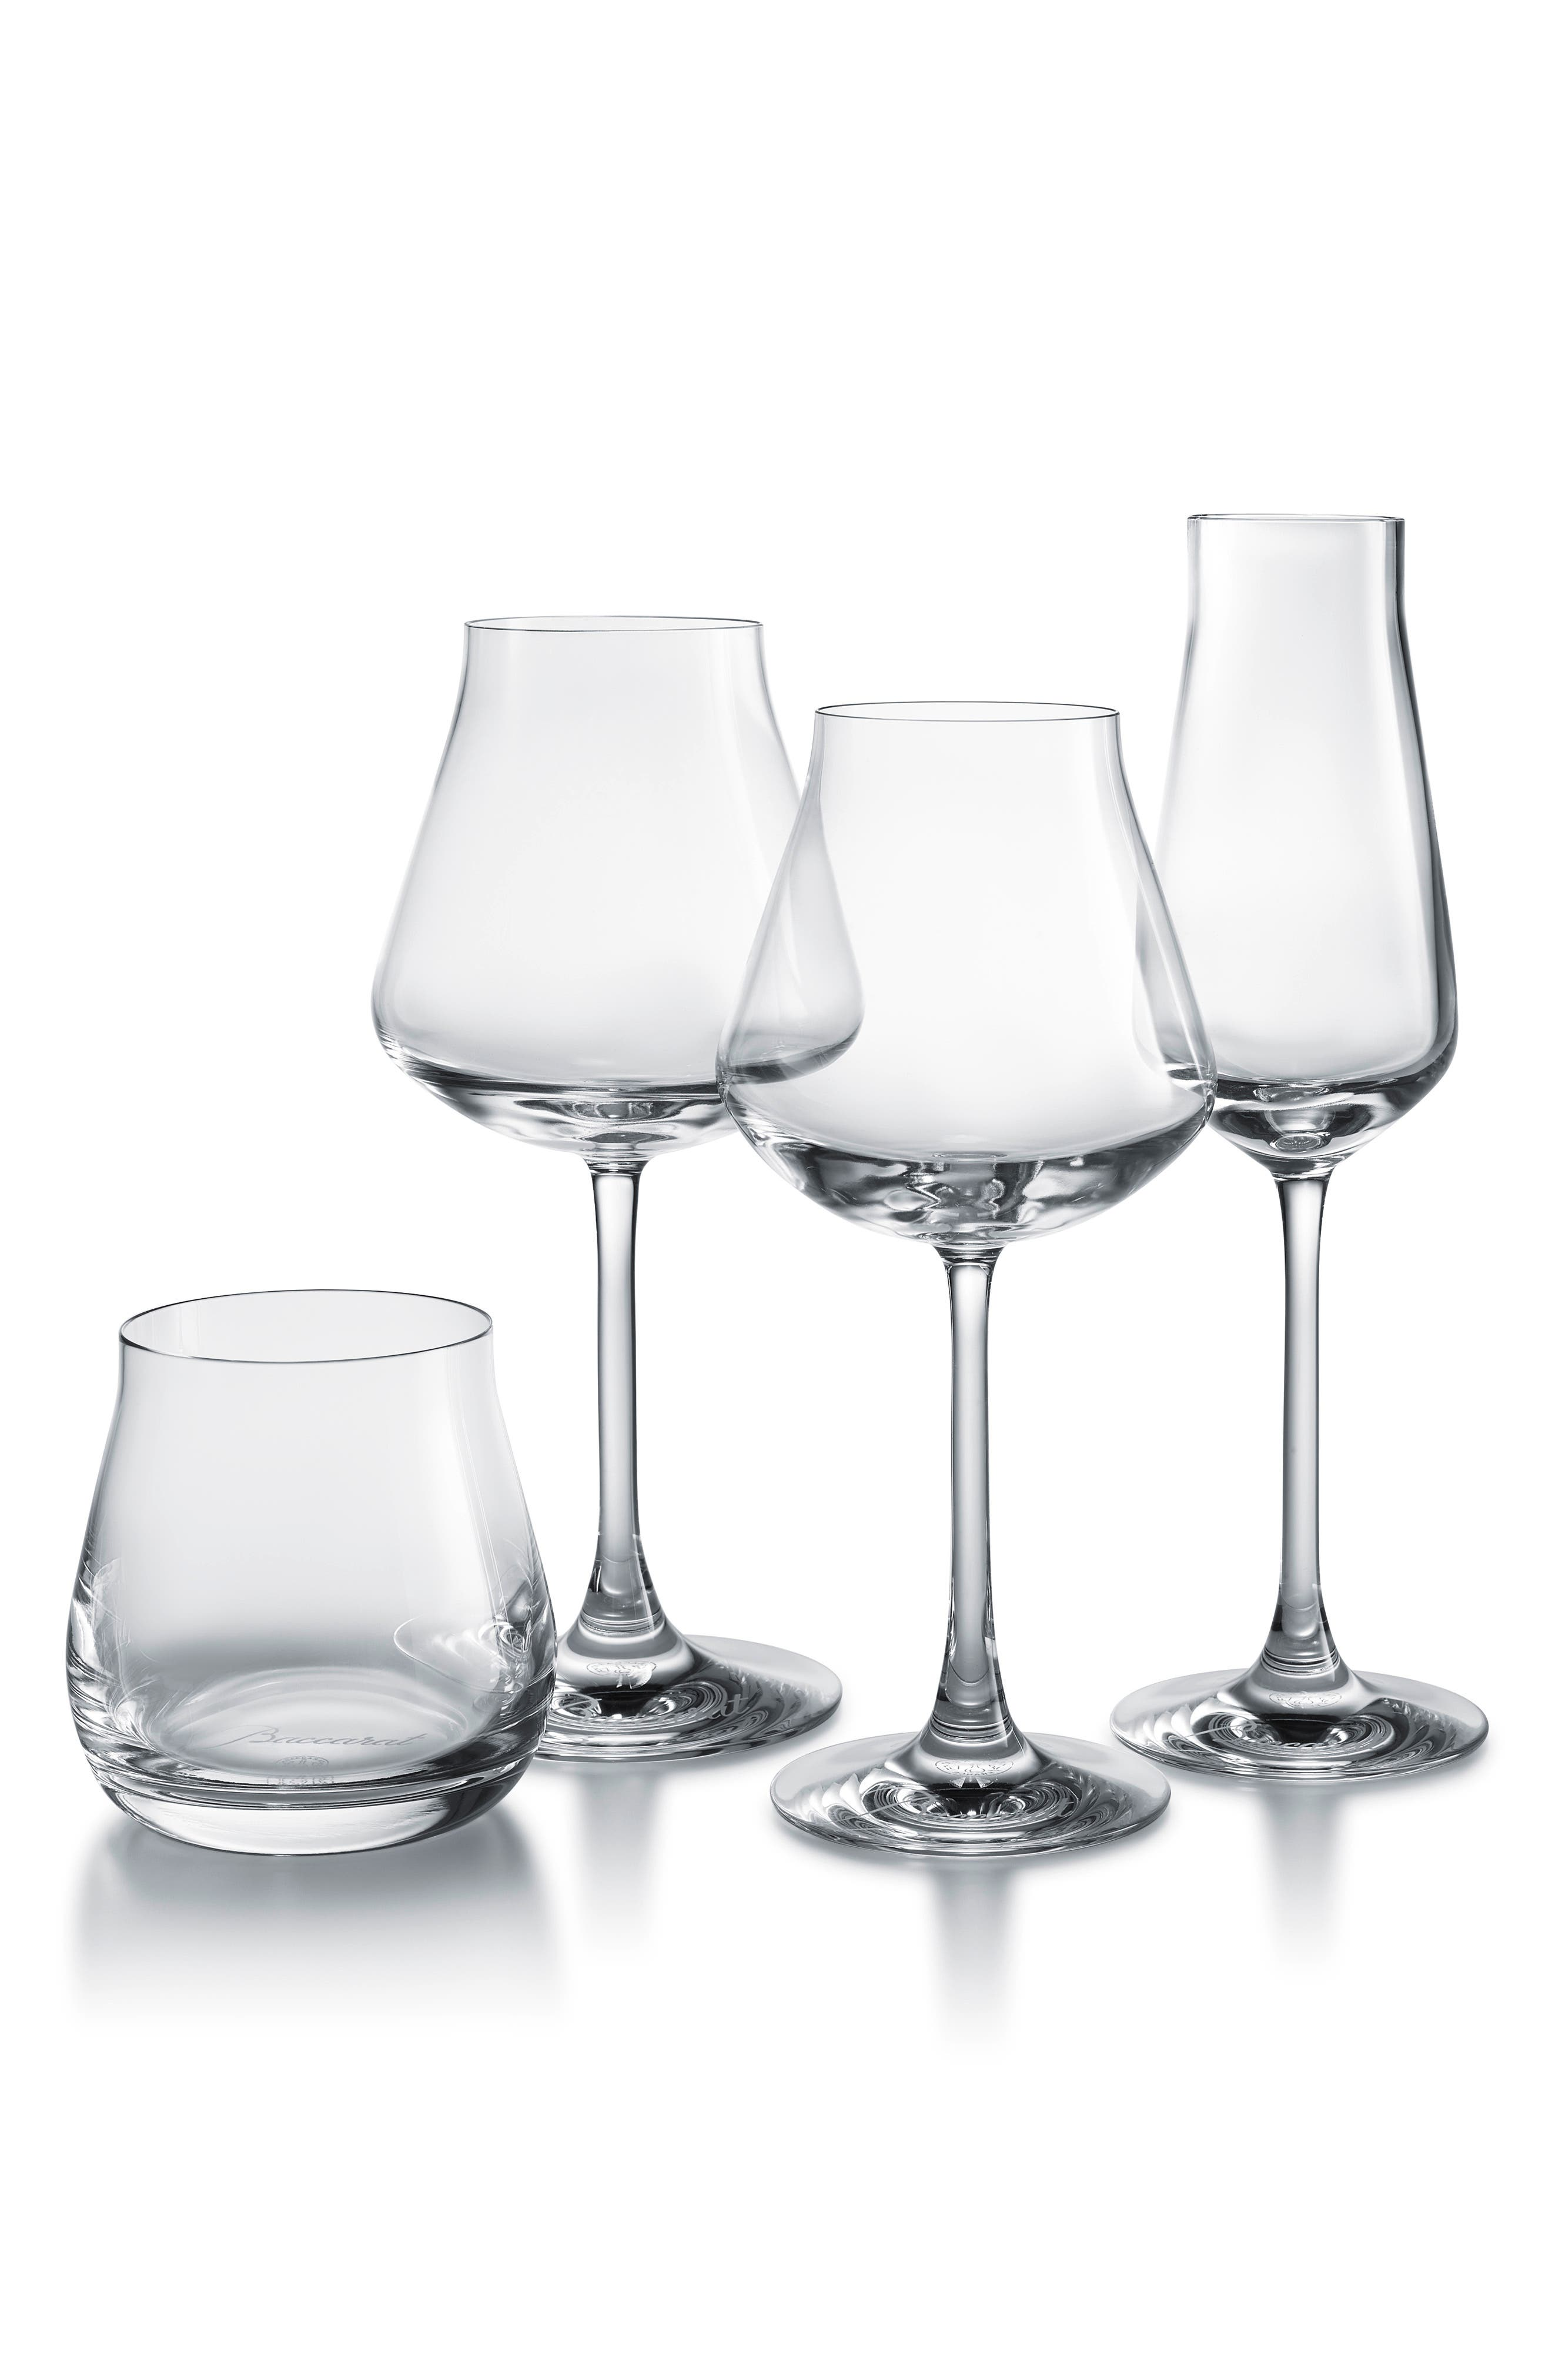 Chateau Baccarat Degustation Set of 4 Lead Crystal Tasting Glasses,                             Main thumbnail 1, color,                             CLEAR